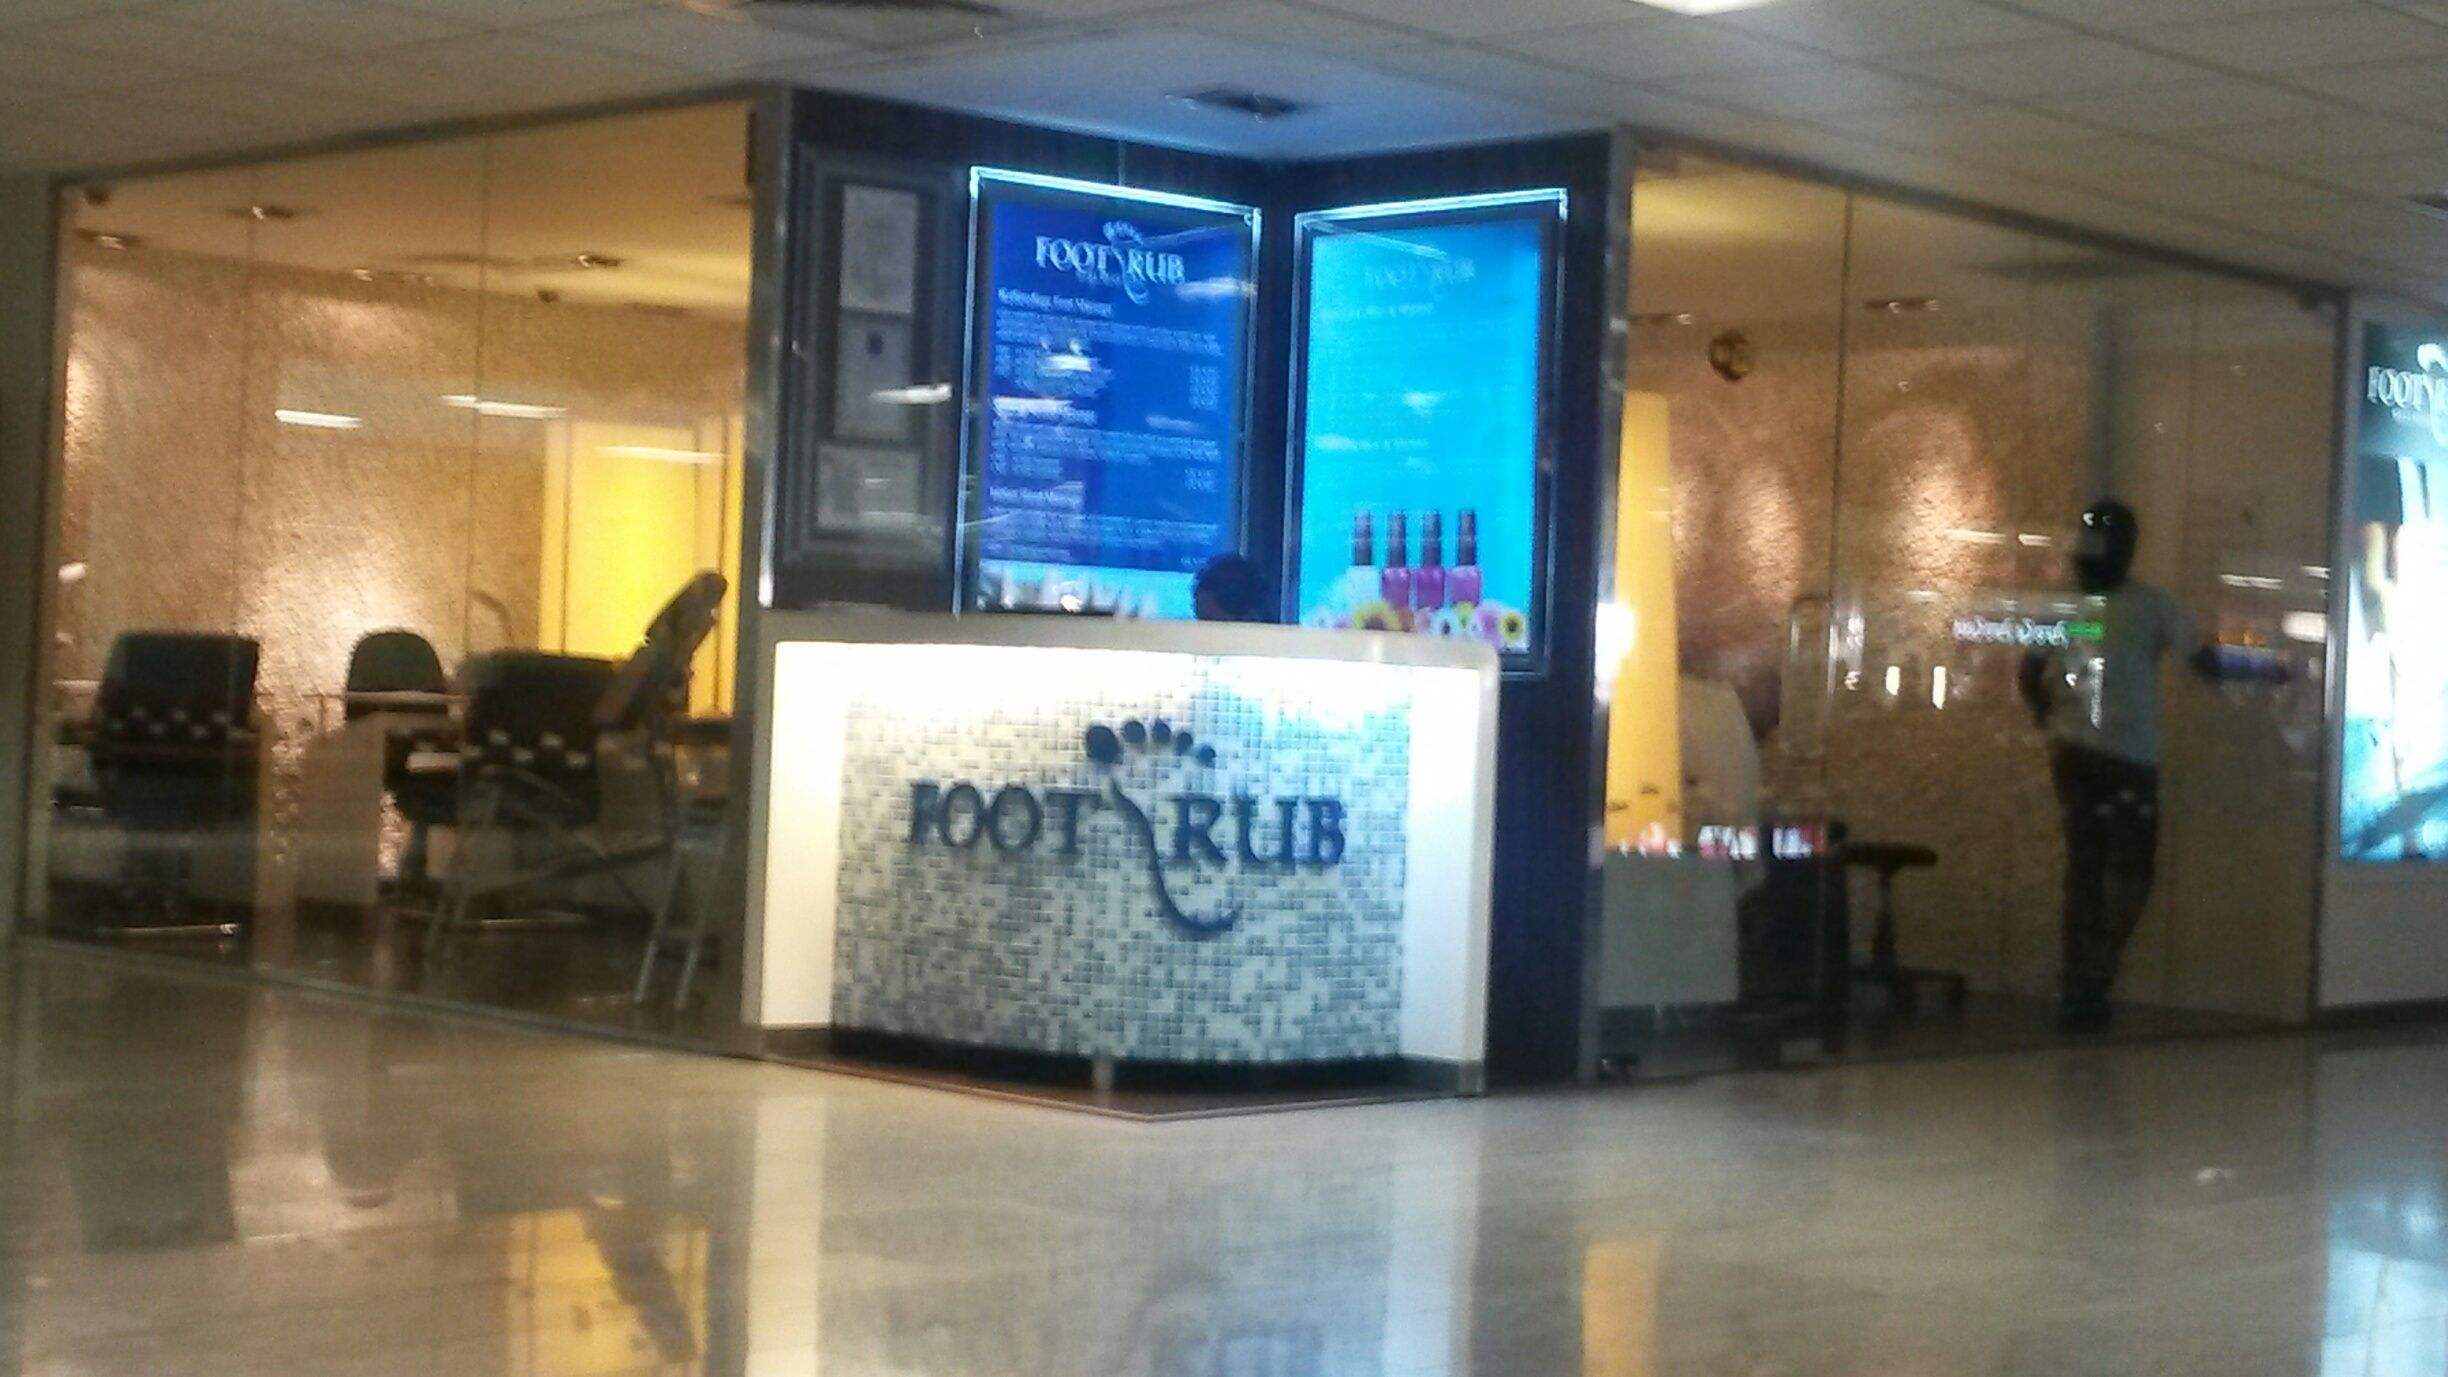 Foot Rub reception Foot spa, Rubs, Flat screen